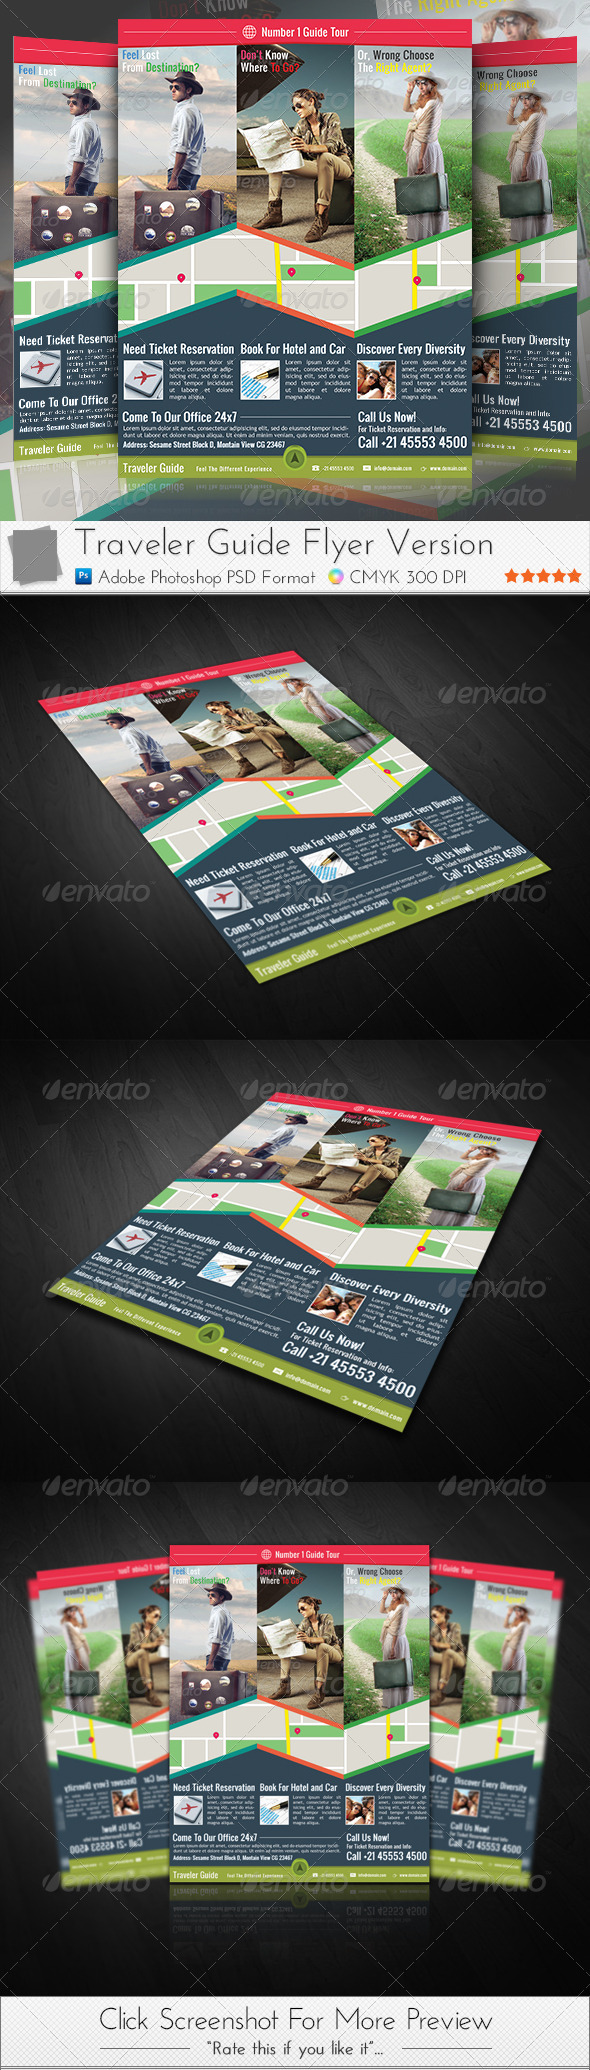 GraphicRiver Traveler Guide Flyer 3950775